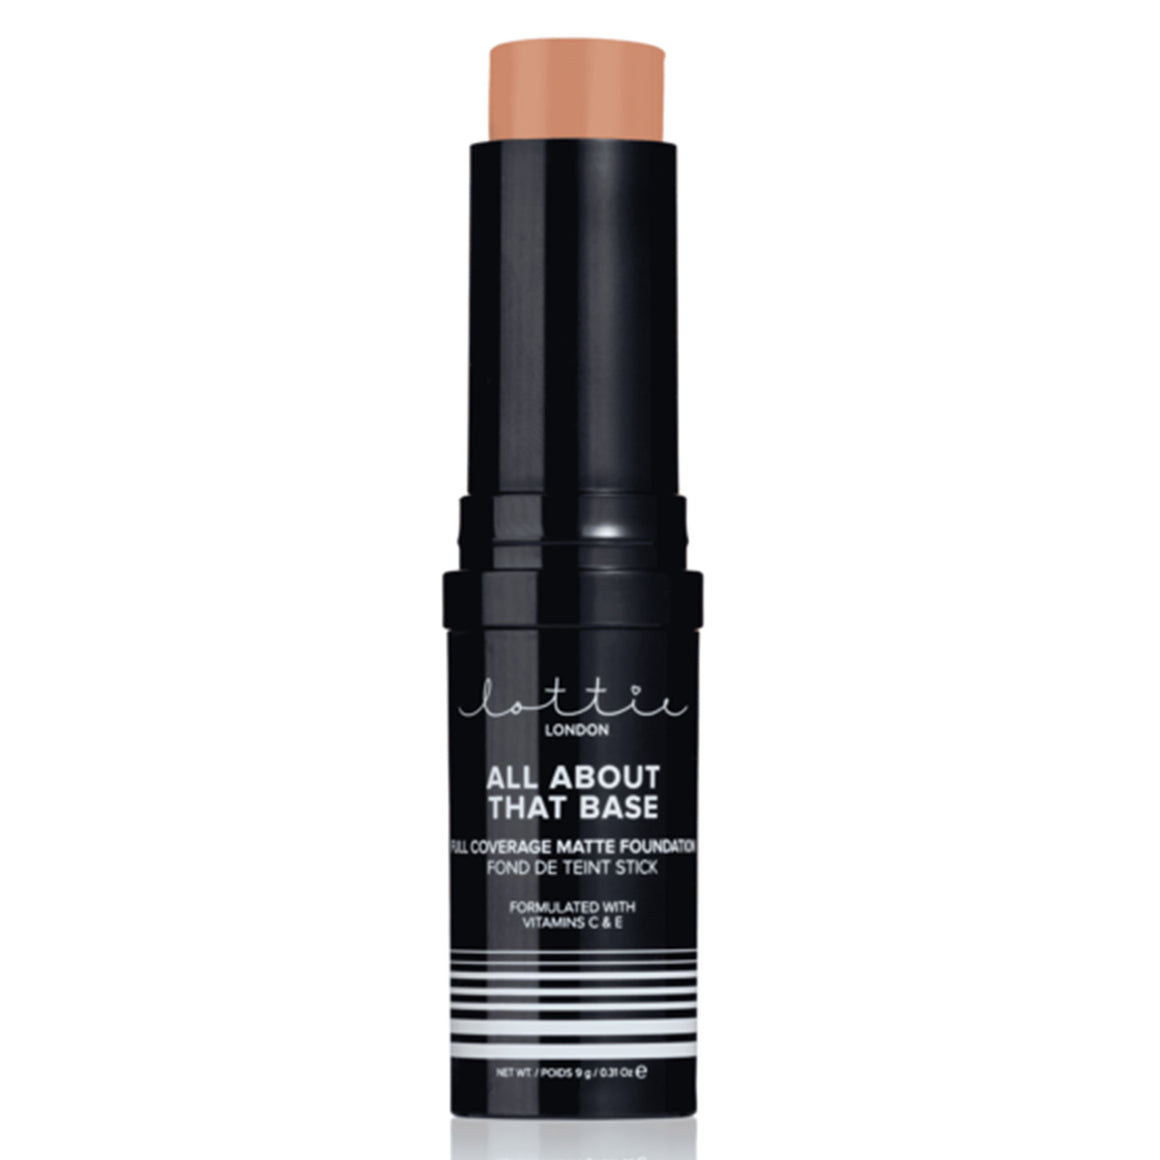 Lottie London - All About That Base Foundation Stick - Amber Honey